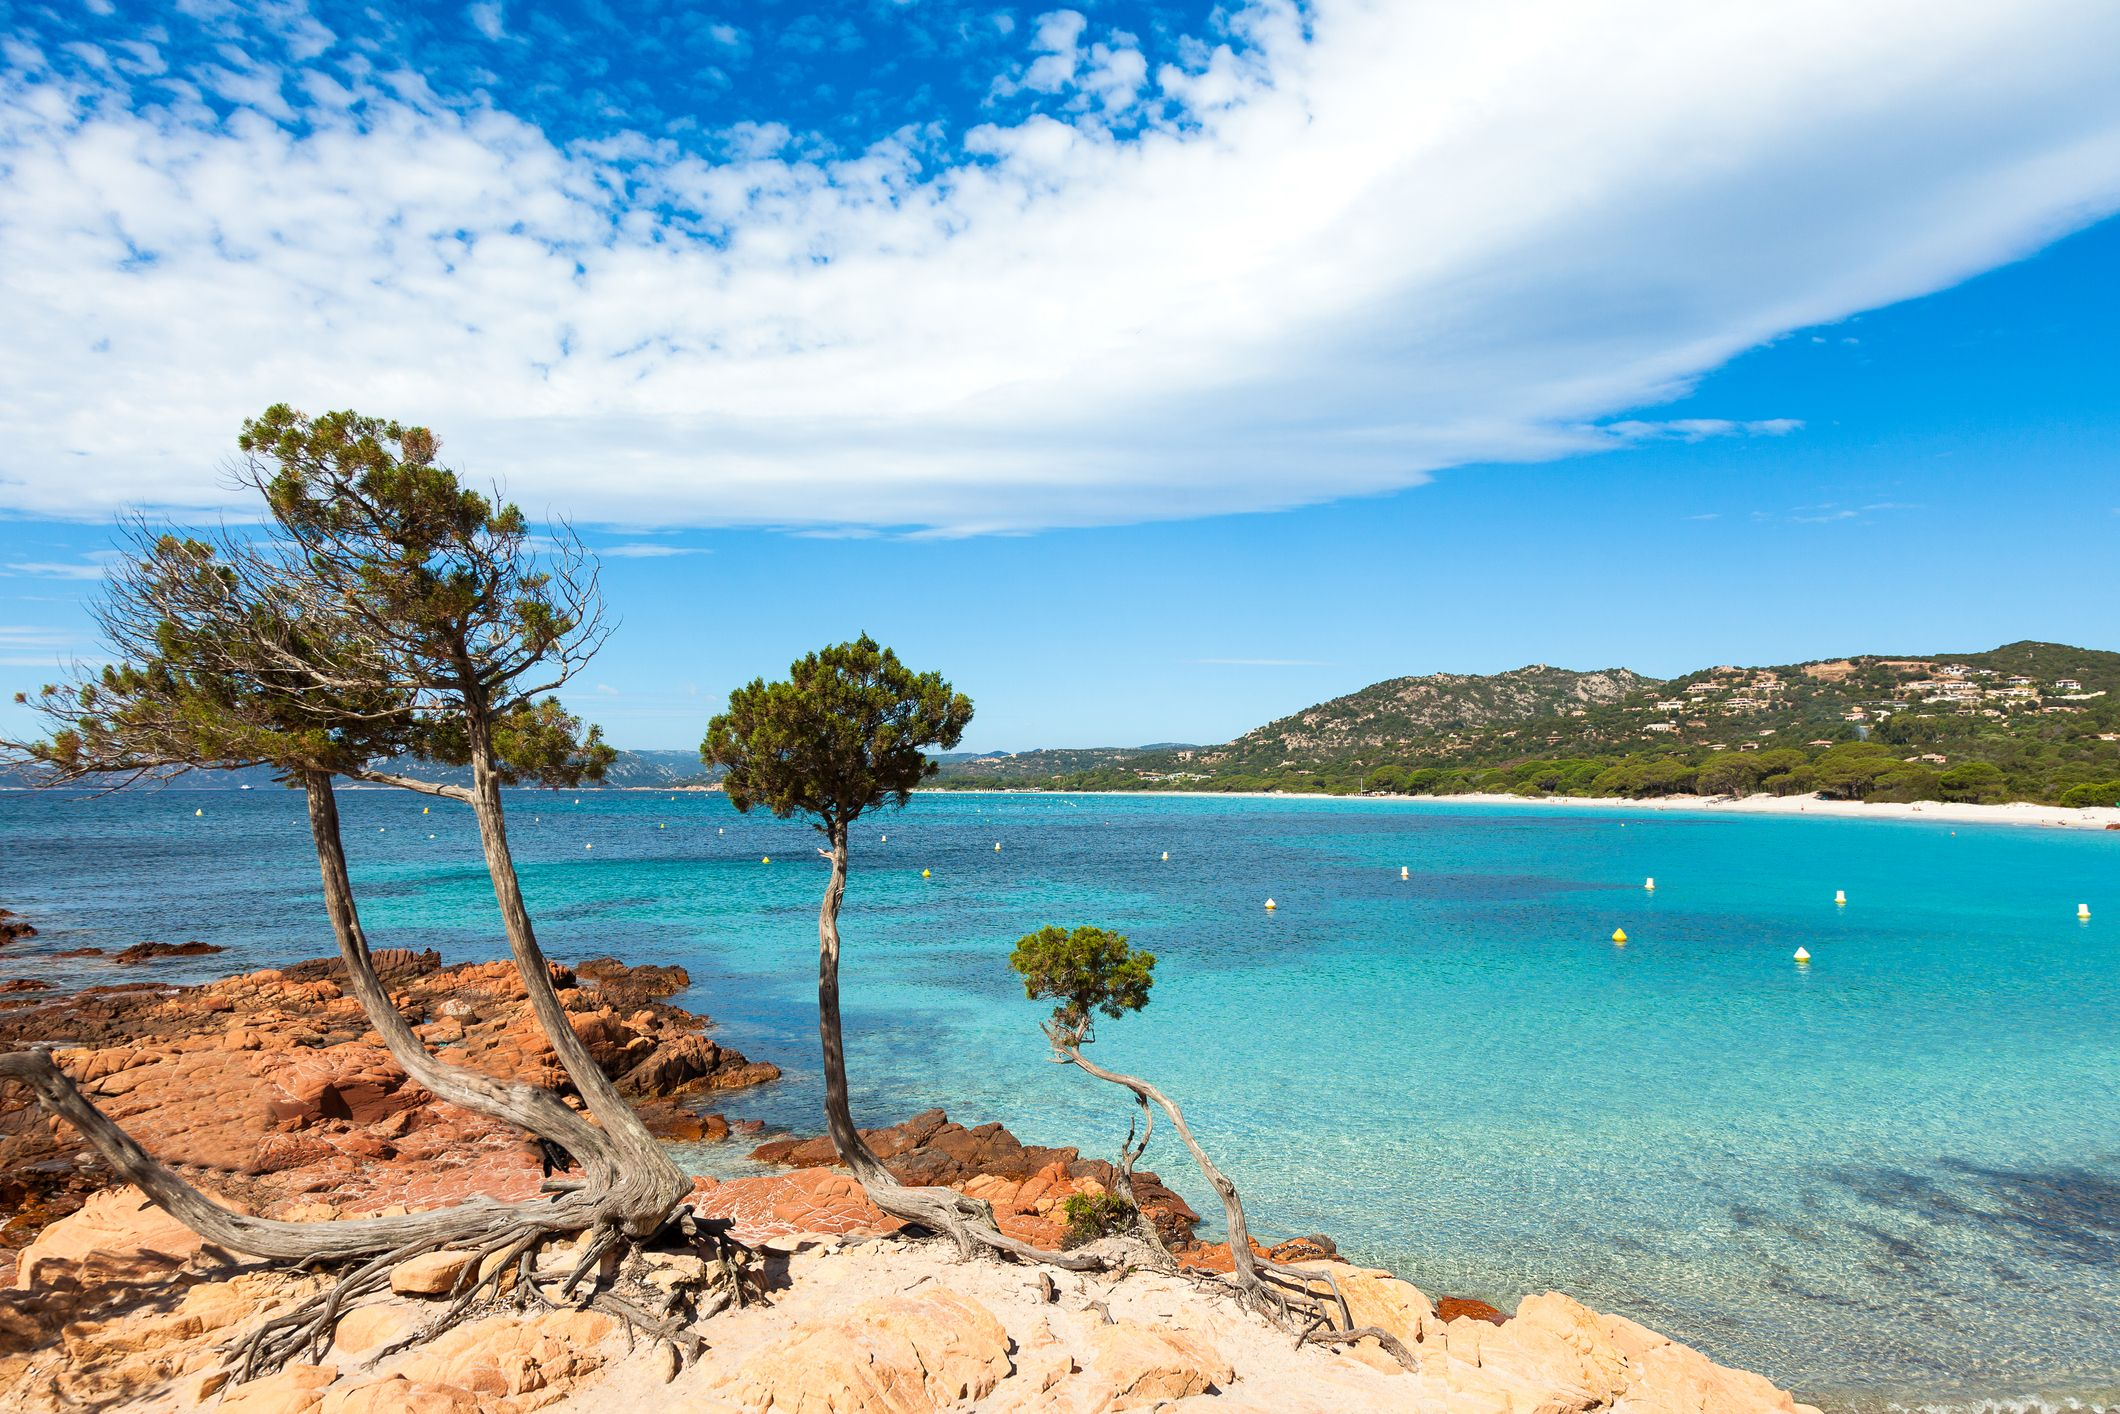 best beaches europe -Palombaggia beach in Corsica Island in France